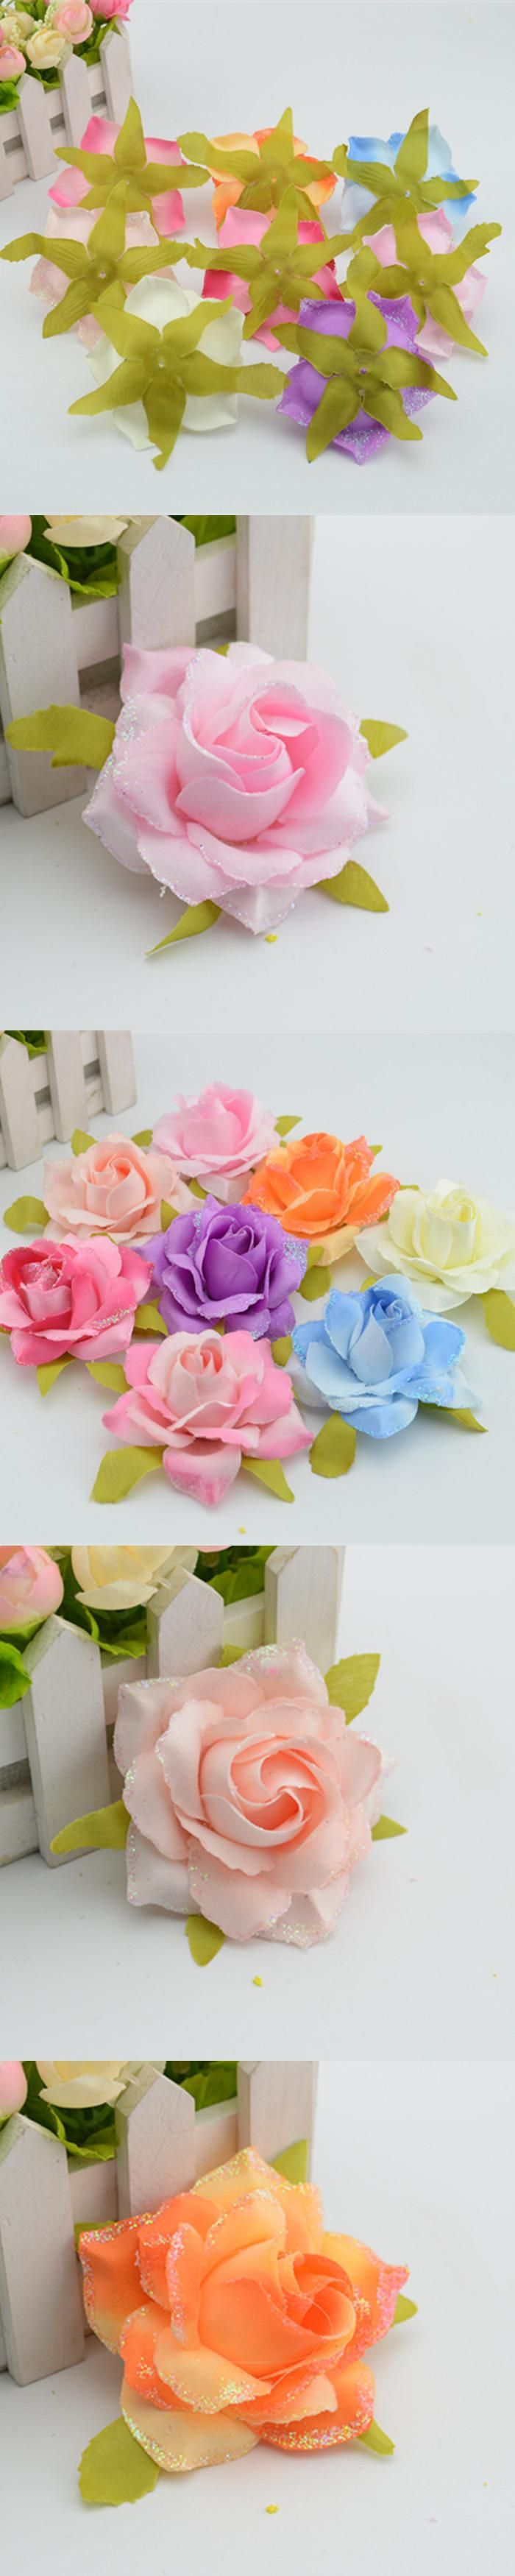 6cm artificial flowers silk flower rose corsage hairpin diy shoes 6cm artificial flowers silk flower rose corsage hairpin diy shoes flower decoration flower home decor pinterest mightylinksfo